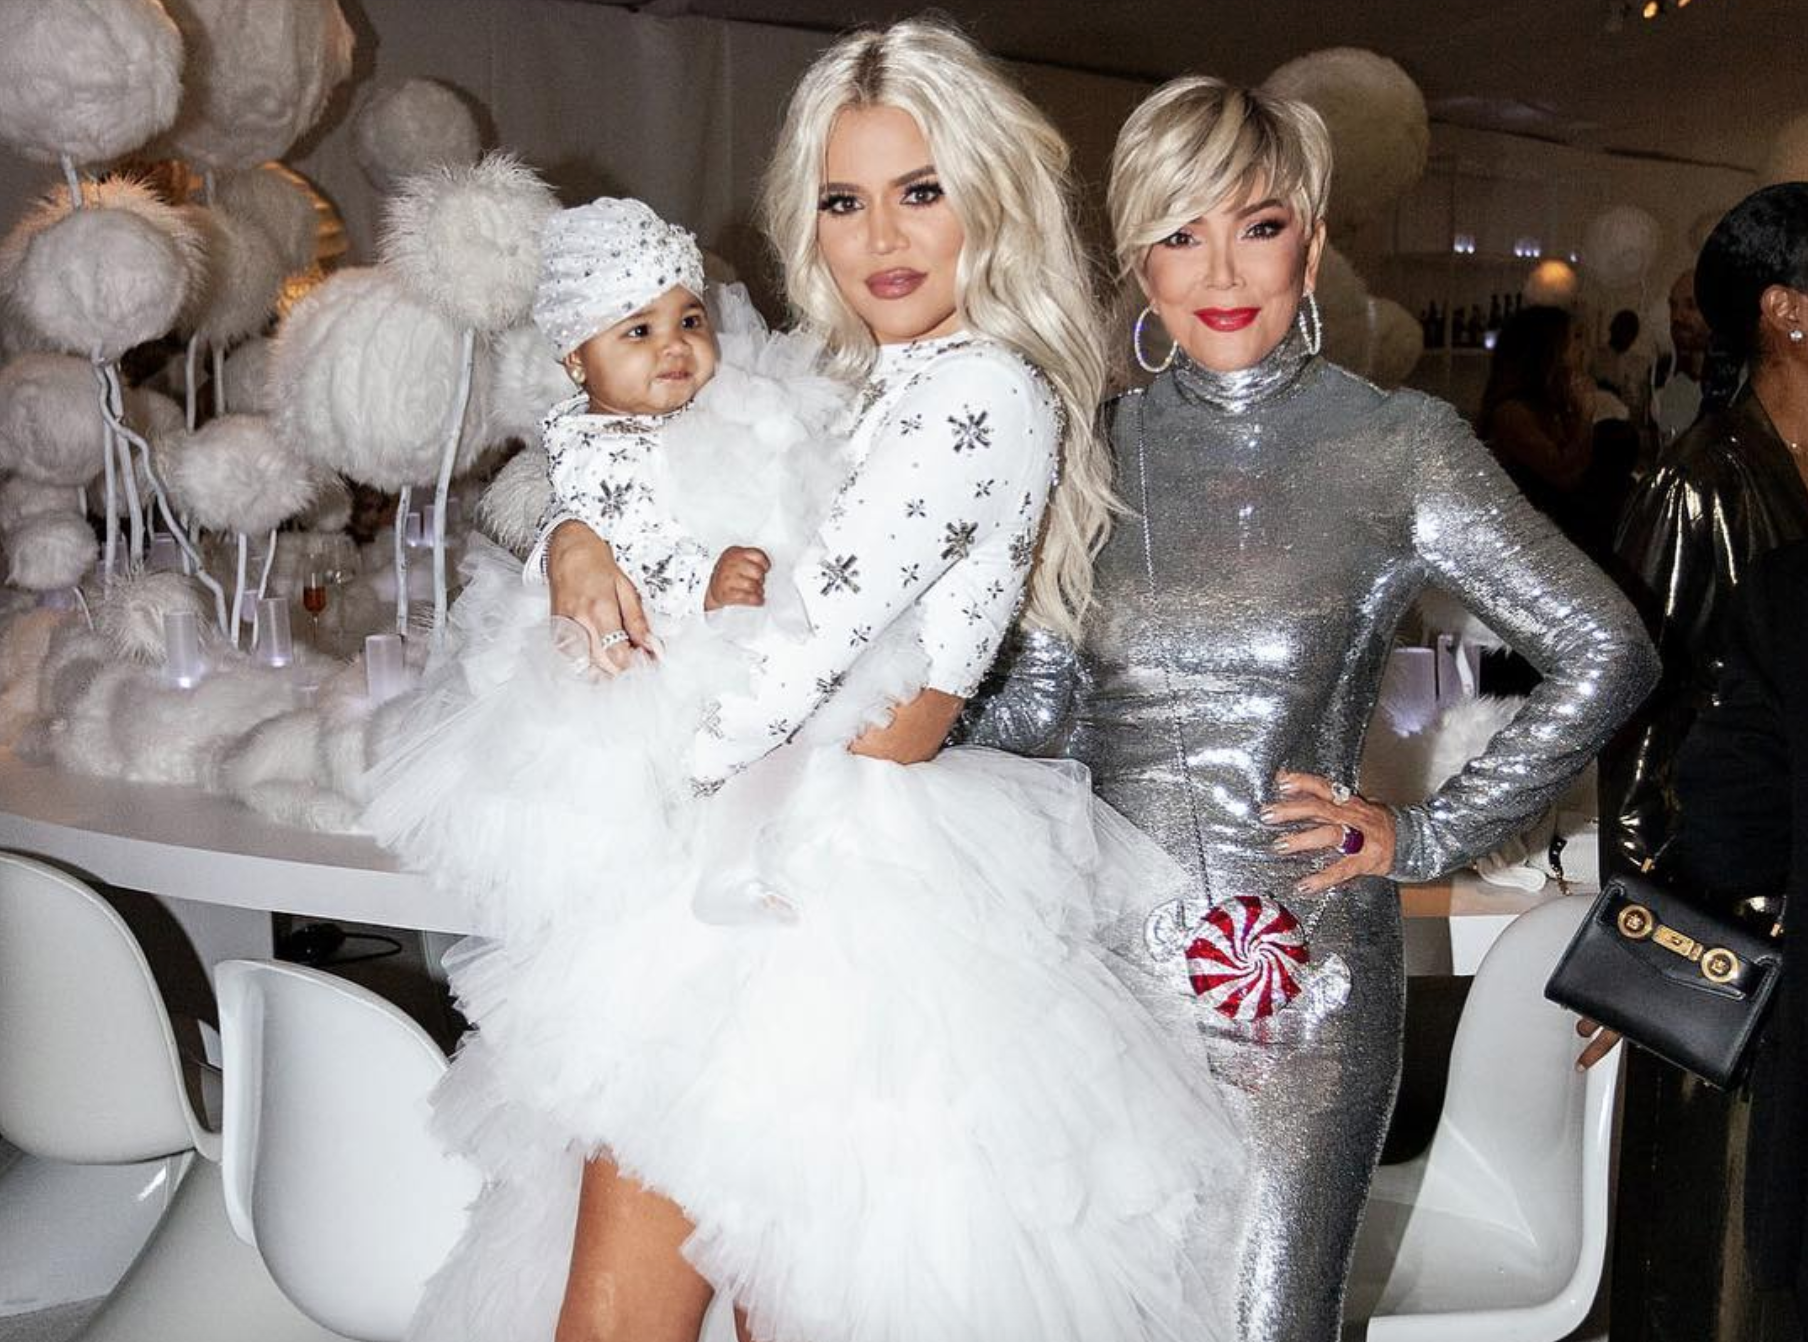 Kardashian Christmas Party 2019 Kardashian Jenner Christmas Party 2018 Photos and Details   Inside